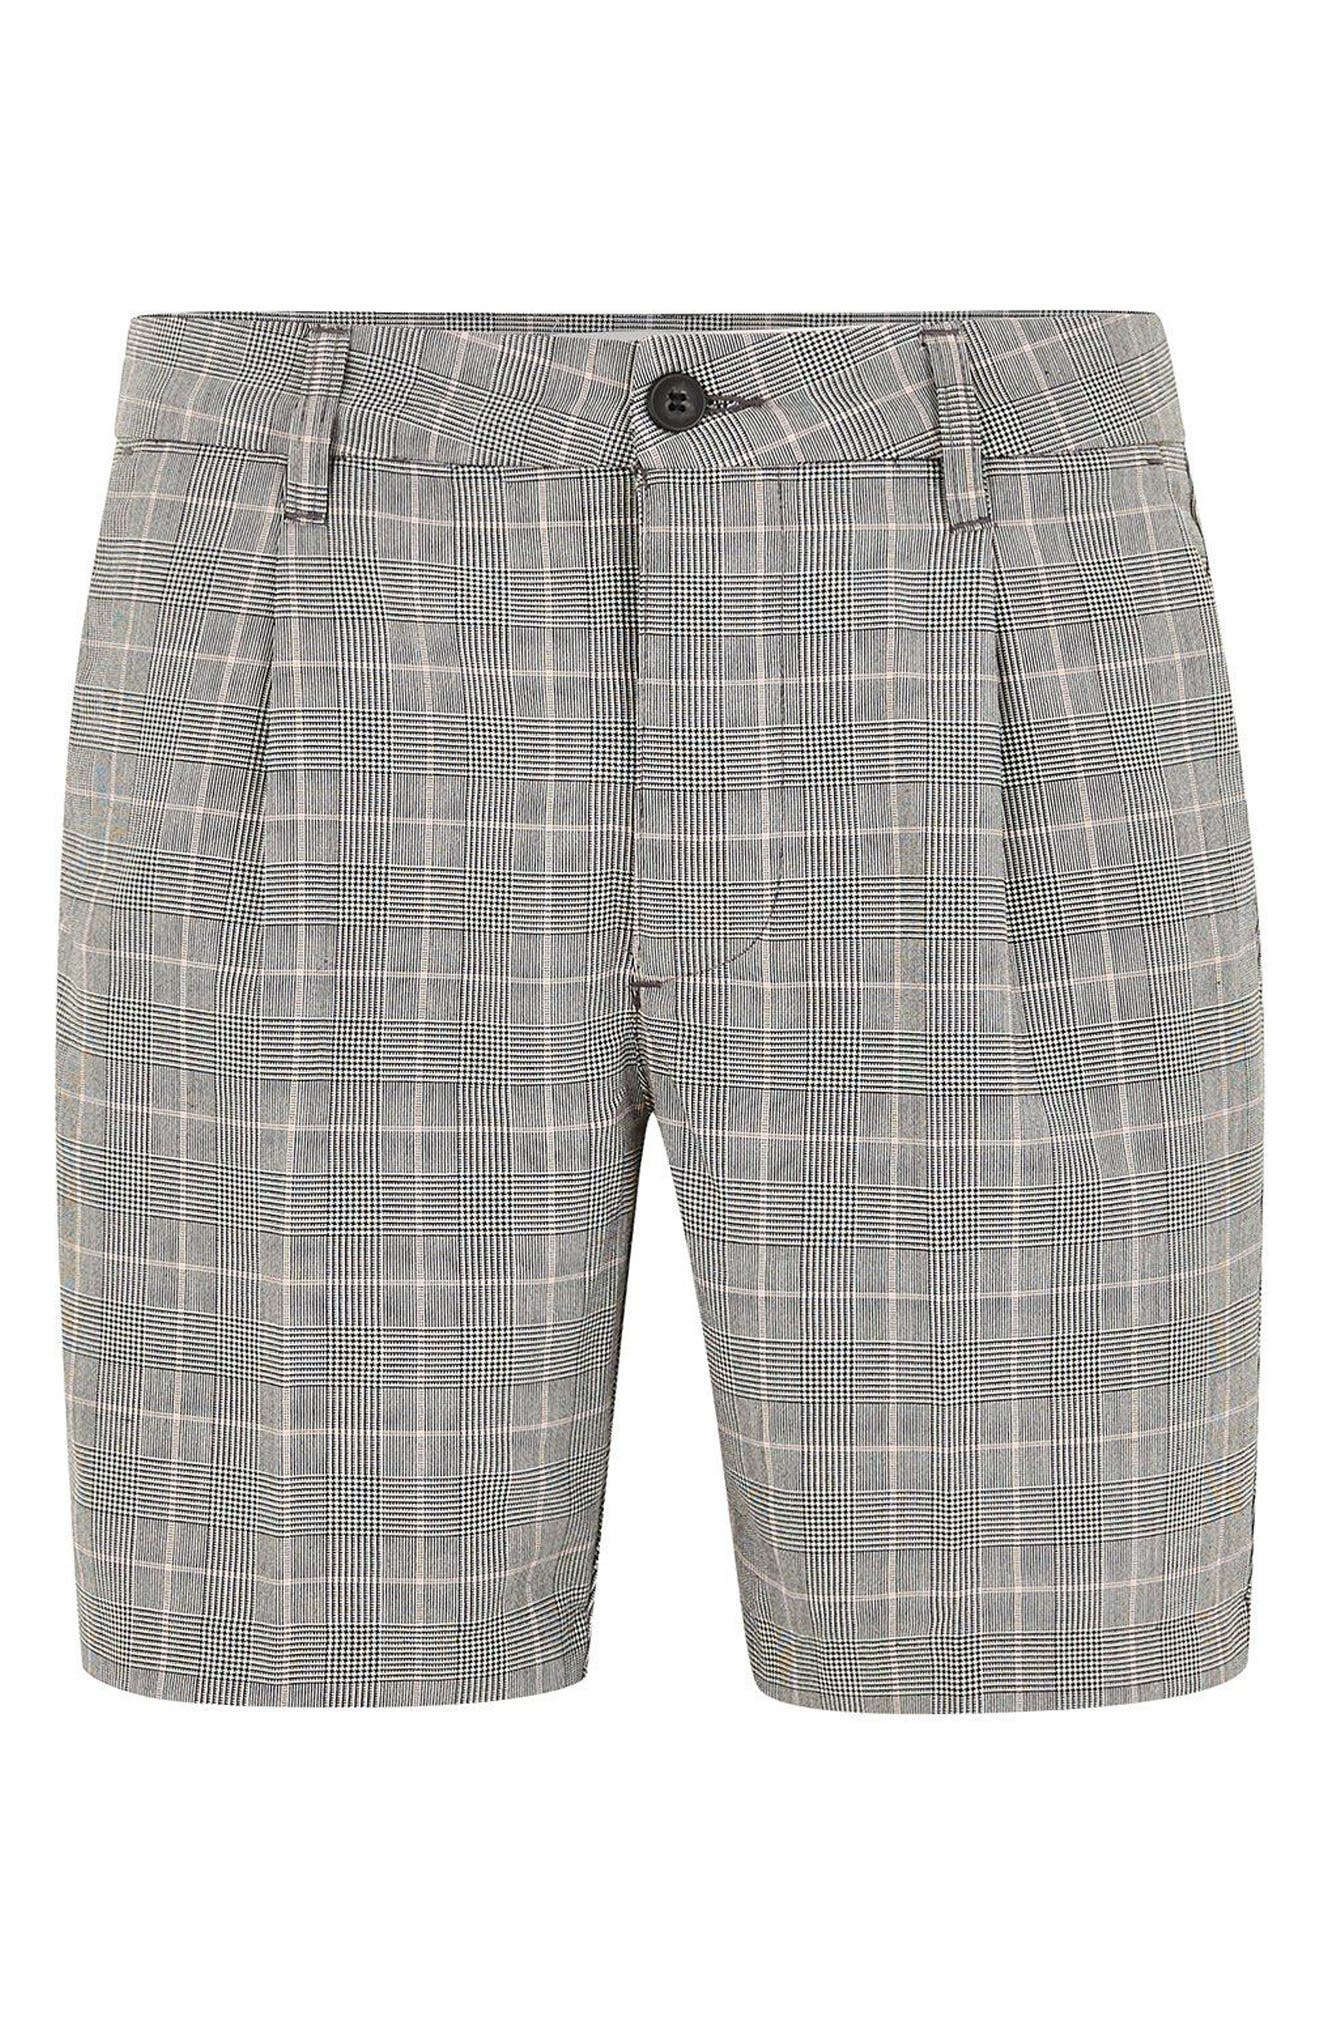 Pleated Check Shorts,                             Alternate thumbnail 3, color,                             020